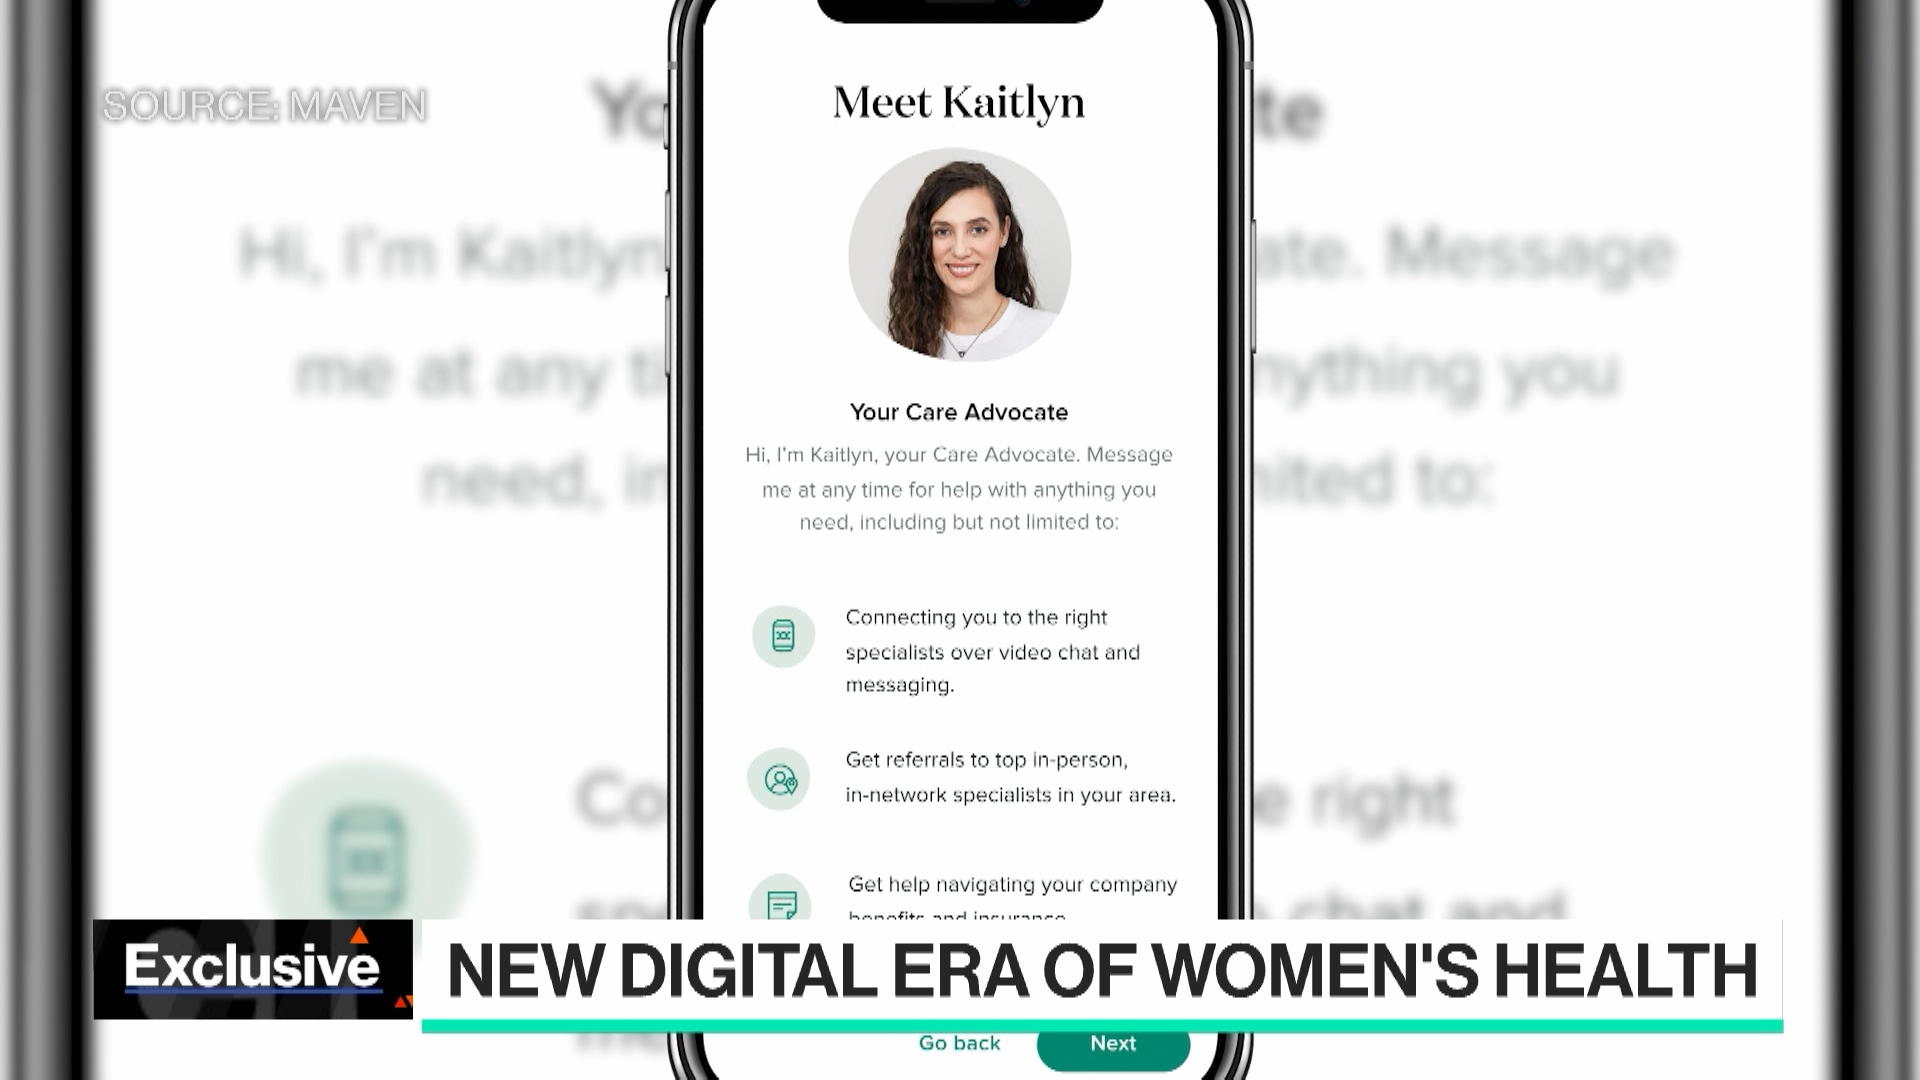 Maven Clinic CEO on Investing in Women and Families